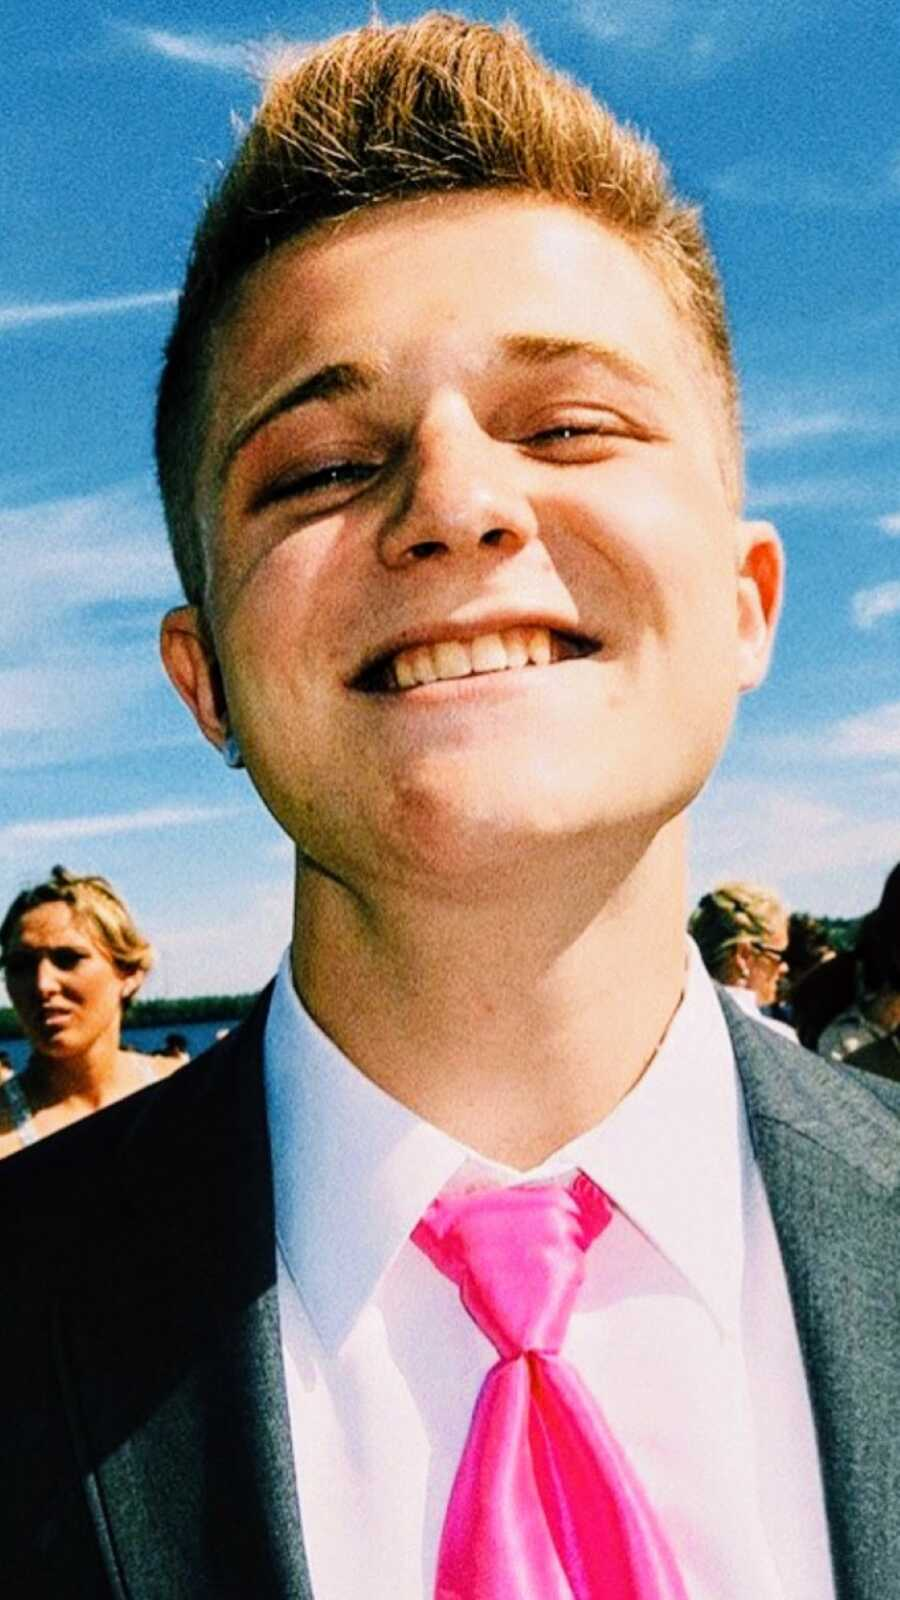 Mom snaps an up-close photo of her son in high school while taking prom pictures in a suit and pink tie